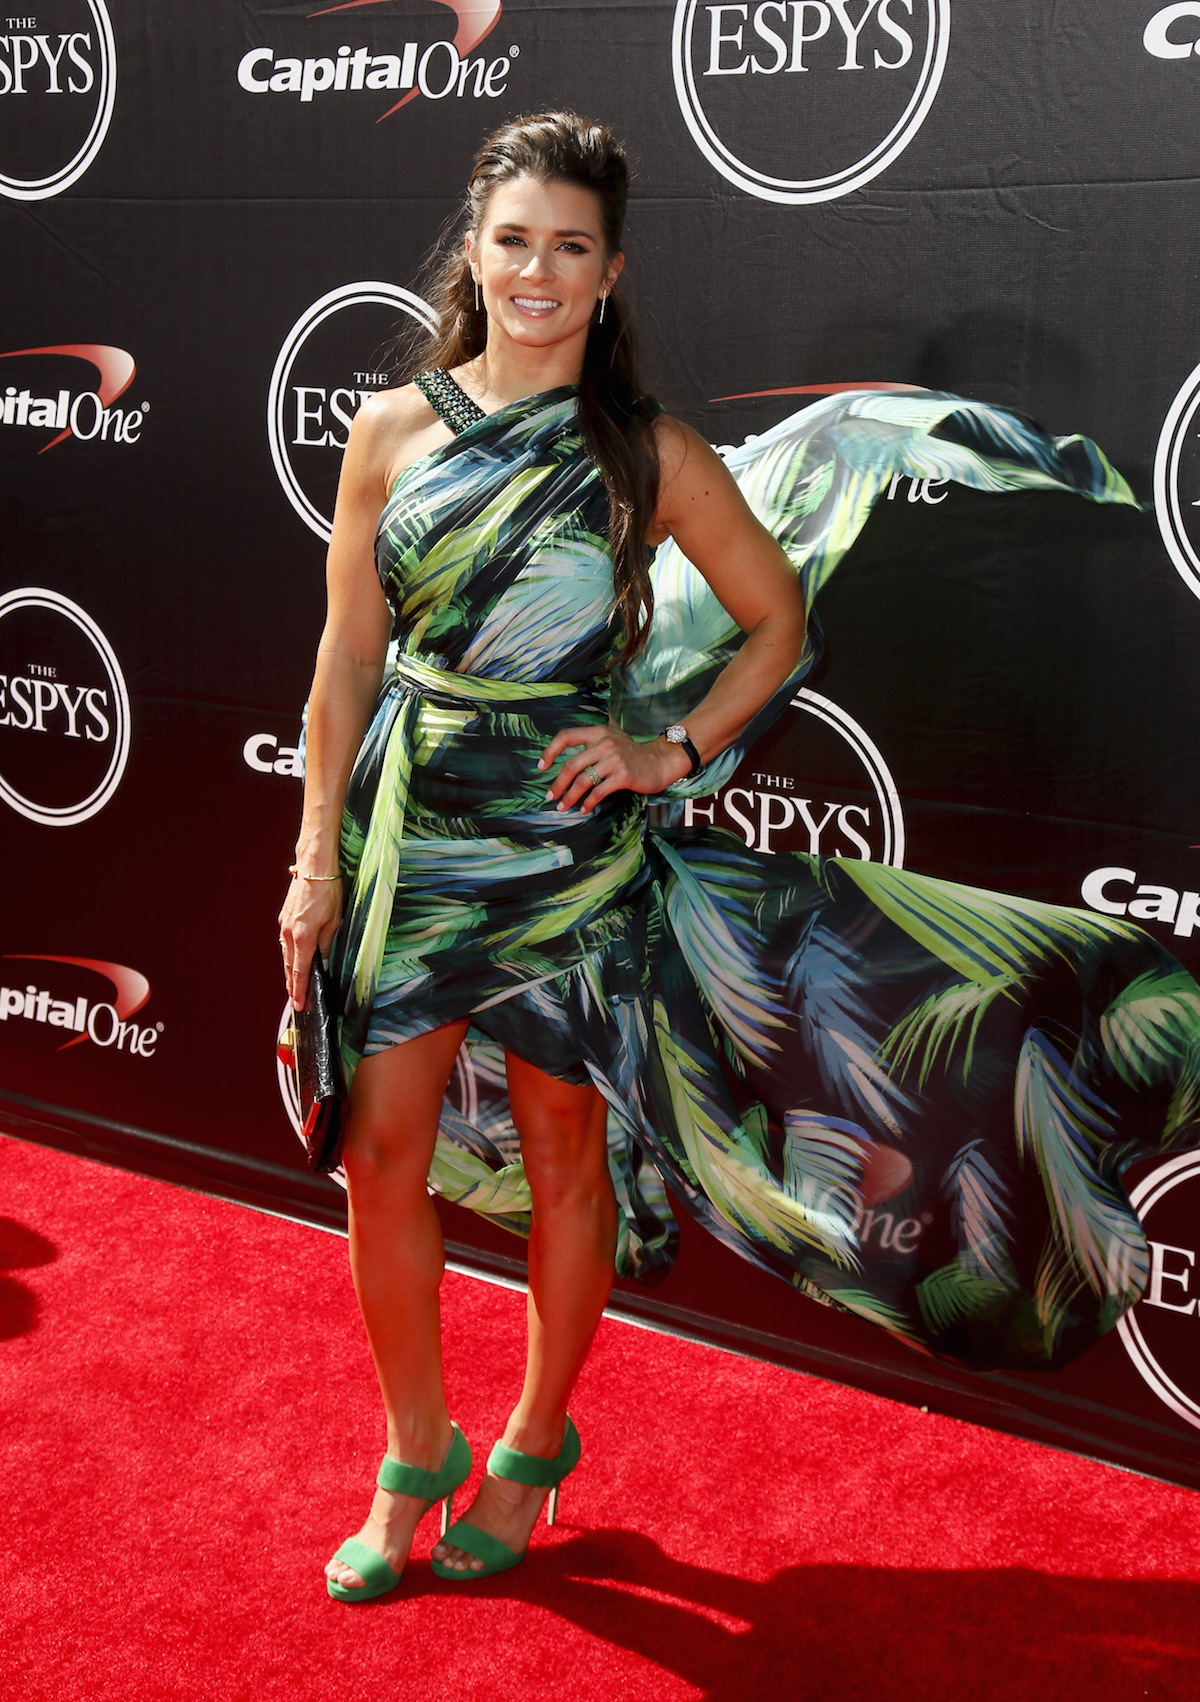 Danica Patrick stunned the red carpet at the 2015 ESPY Awards. (Photo: Reuters)